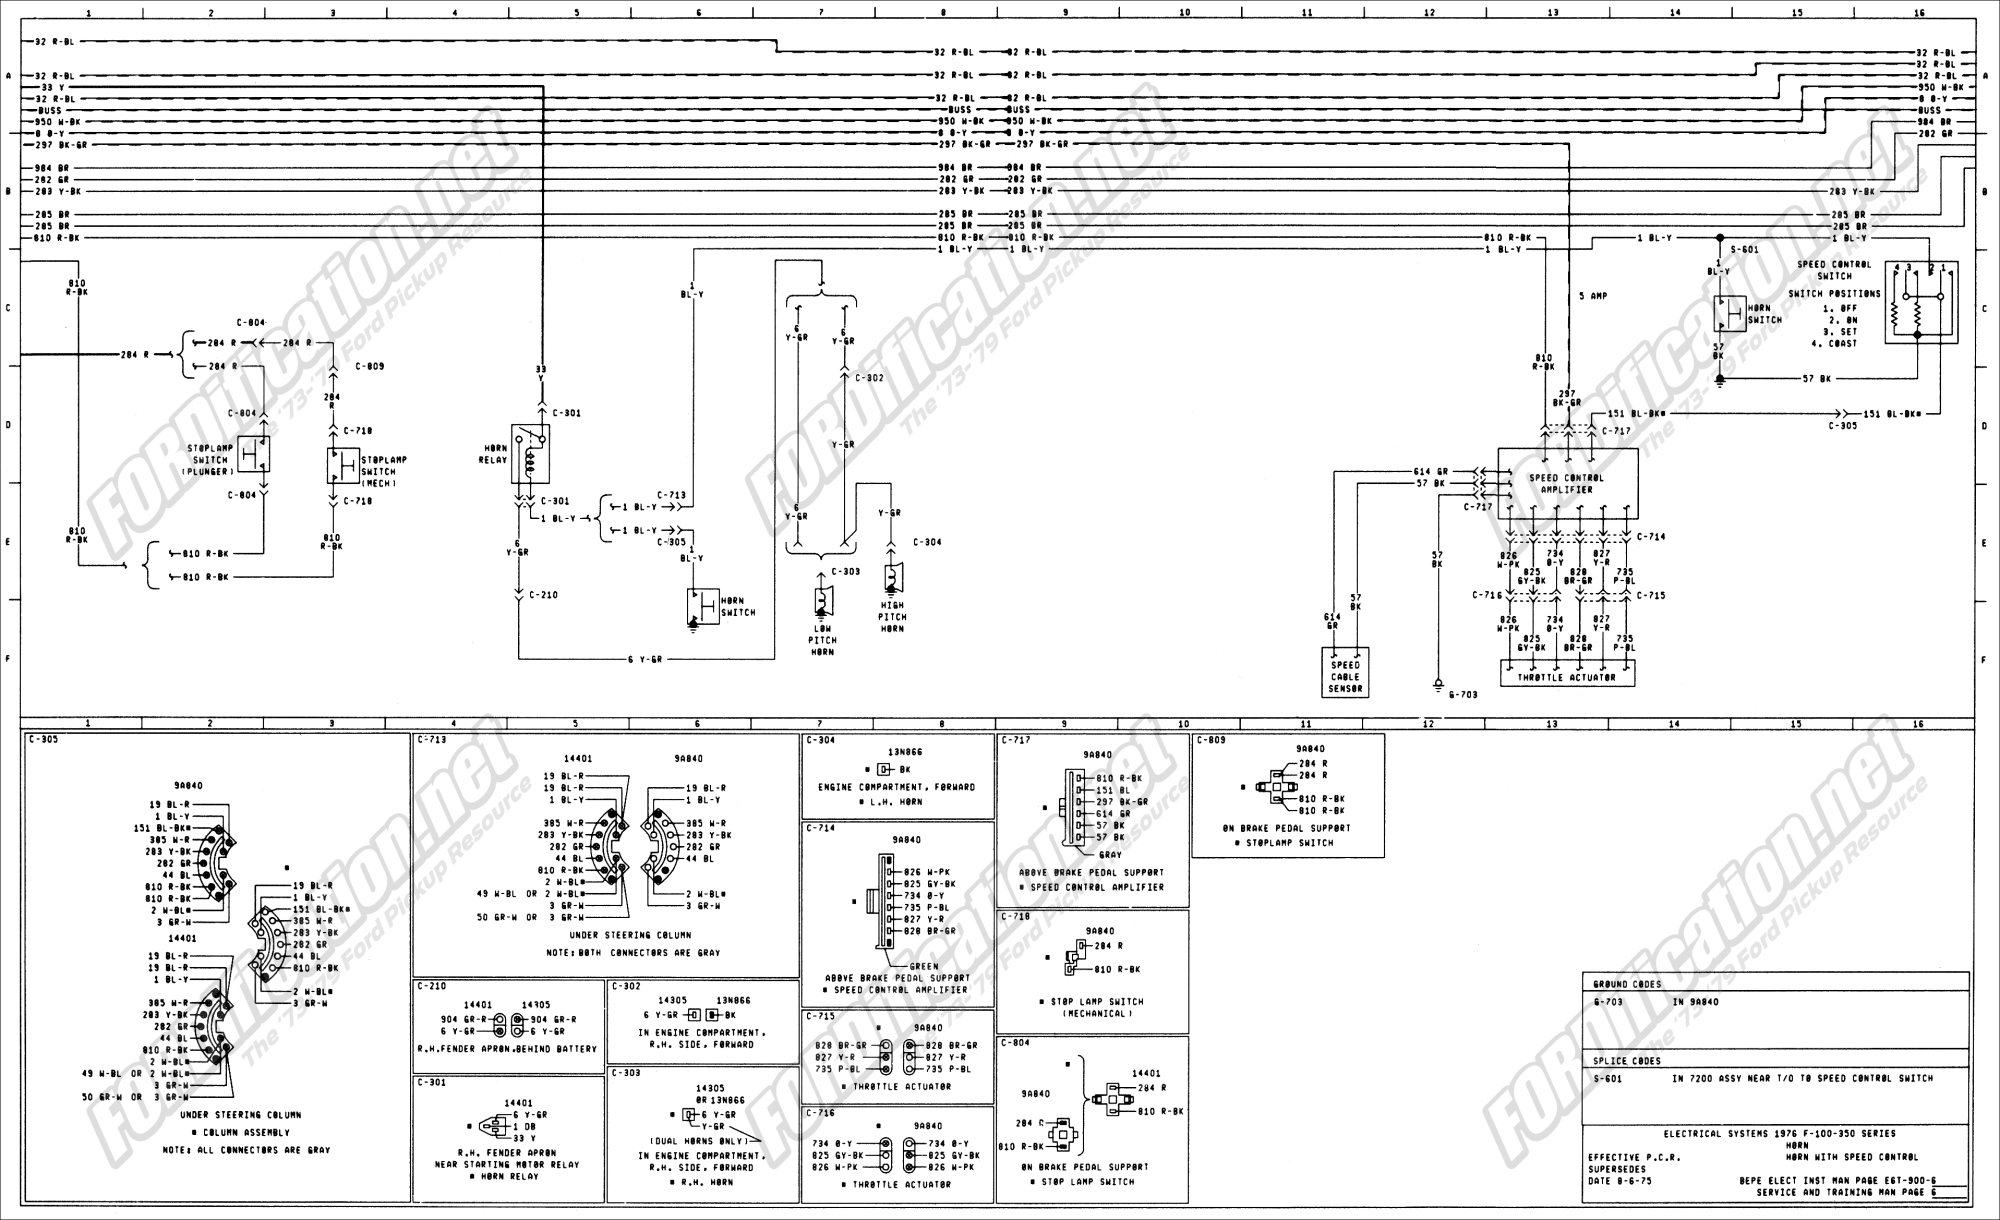 hight resolution of 1973 1979 ford truck wiring diagrams schematics fordification net ford rear view mirror wiring diagram 1968 ford wiring diagram tail lights